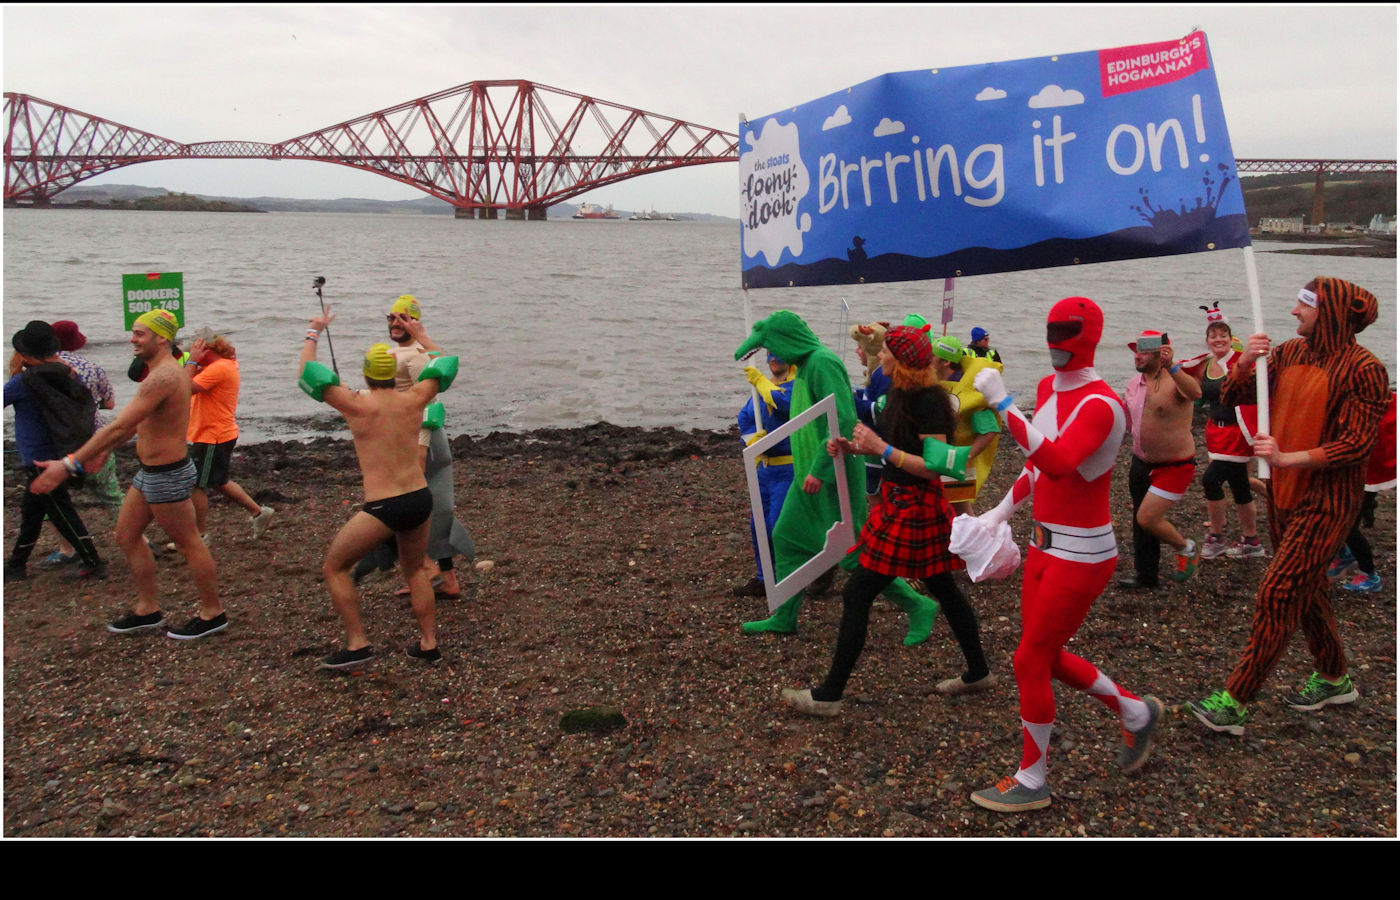 THE LOONY DOOK by Jim Williams